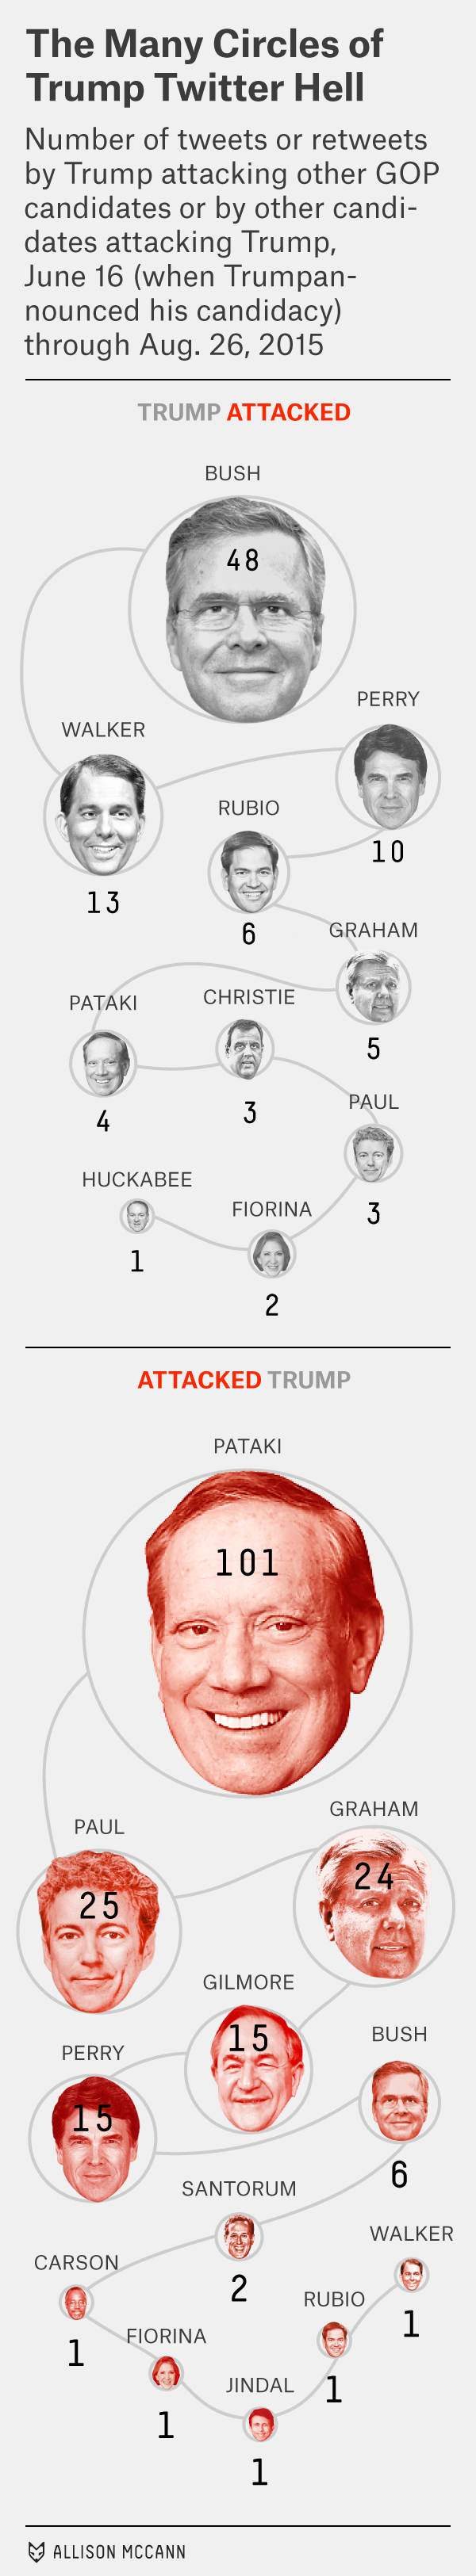 enten-mccann-datalab-trump-mobile